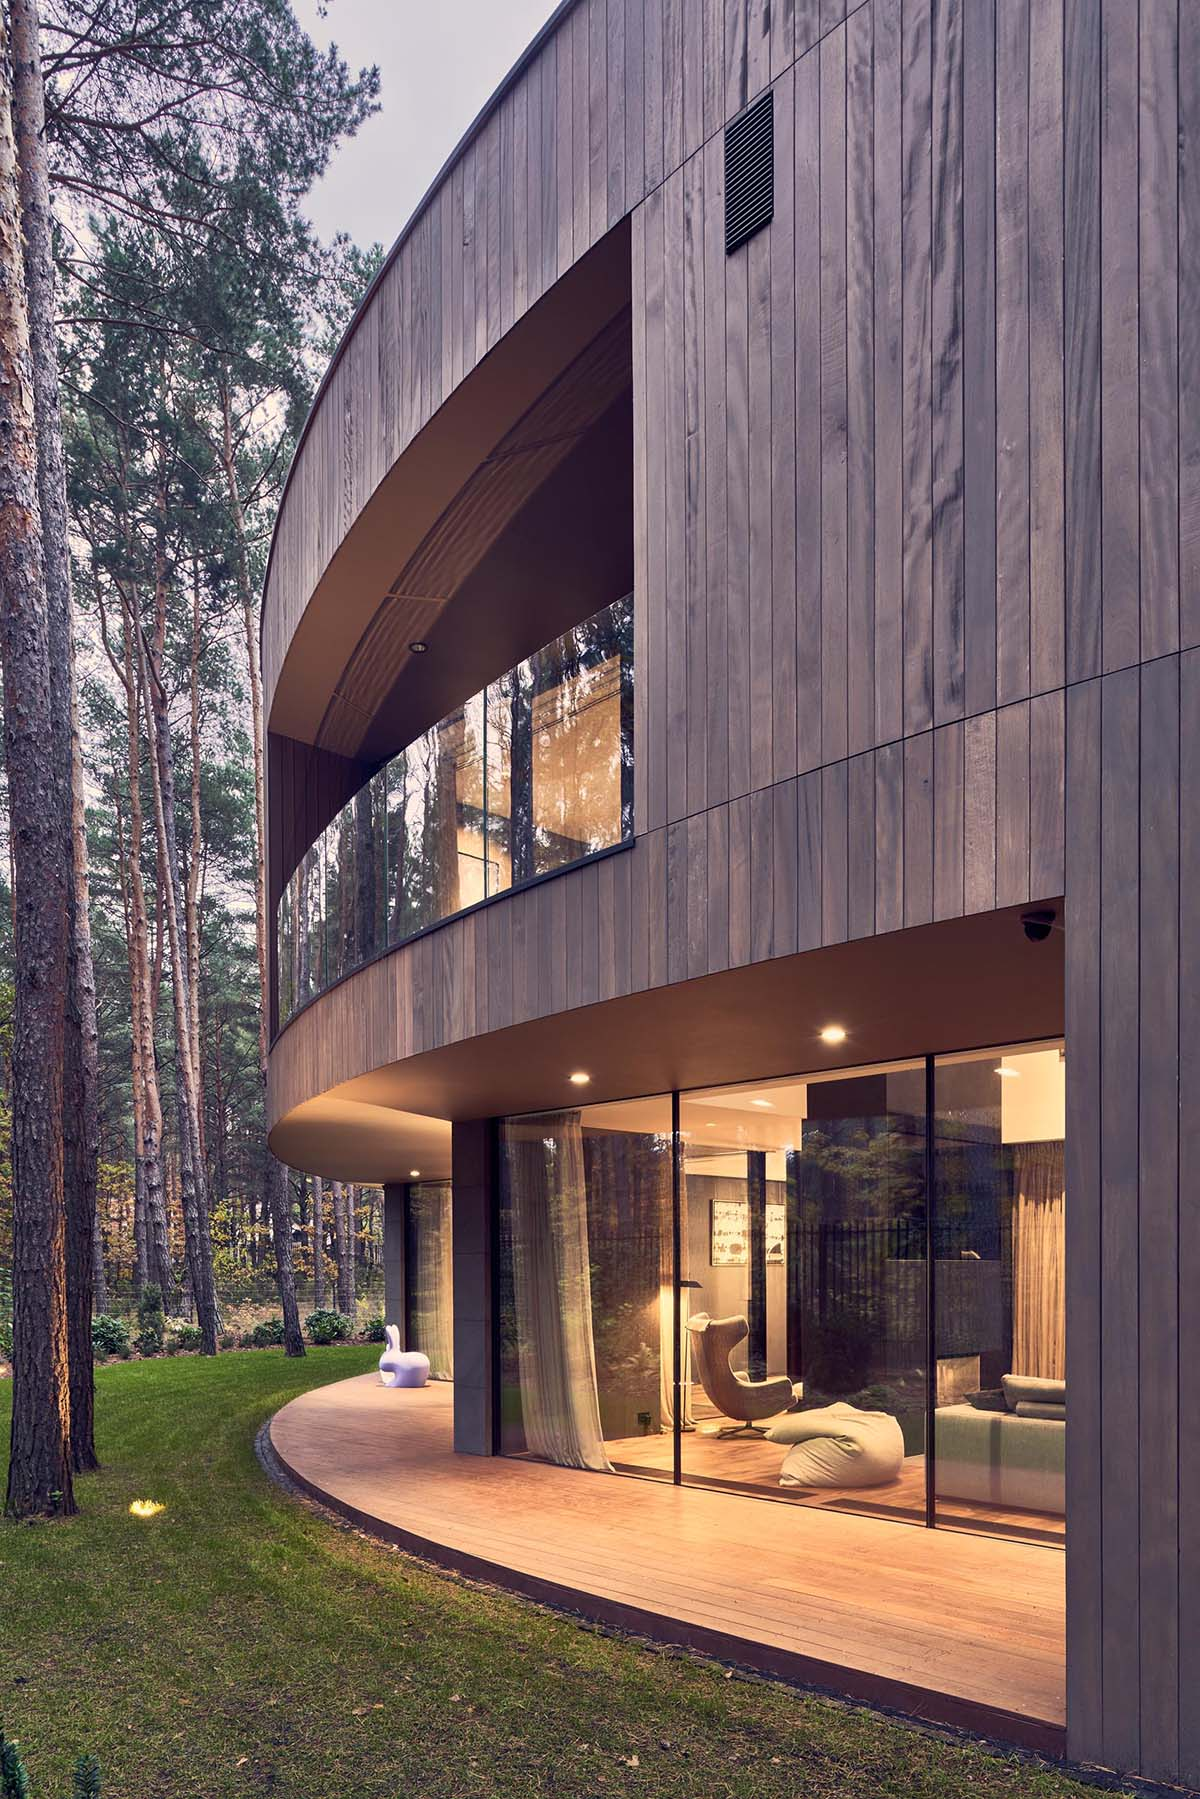 A modern circular home with a wood exterior and large windows that provide a glimpse of the interior.